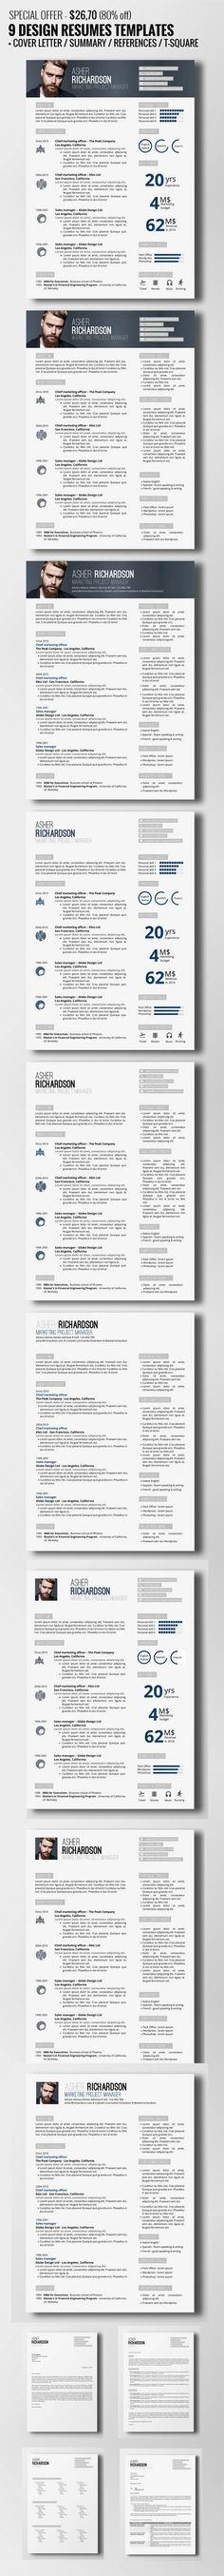 435 best Resume images on Pinterest Resume design, Design resume - Html Resume Template